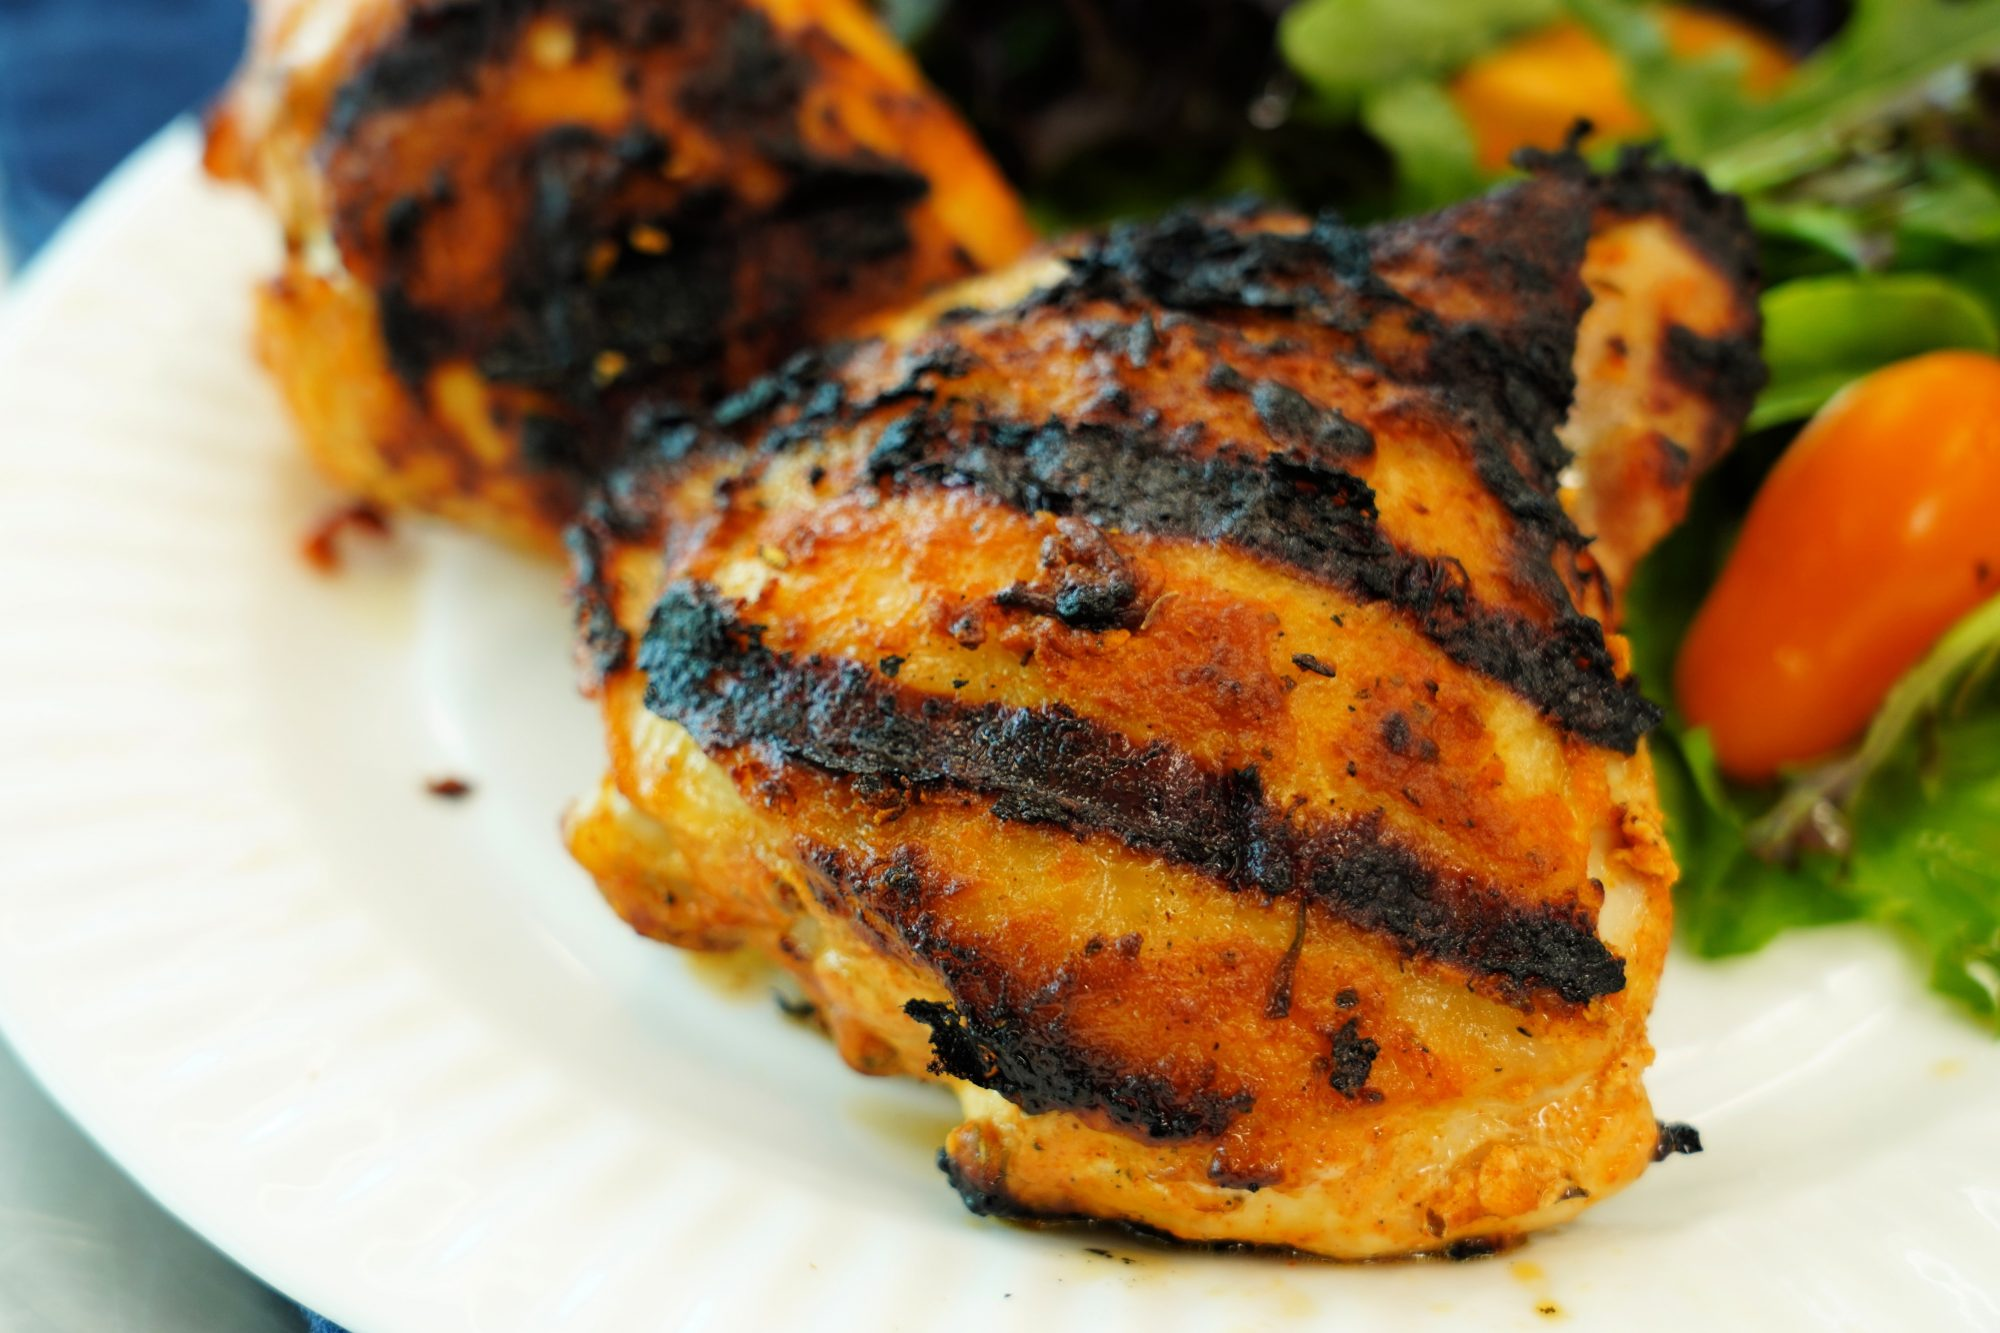 Grilled Lemon Yogurt Chicken served with green salad and tomatoes